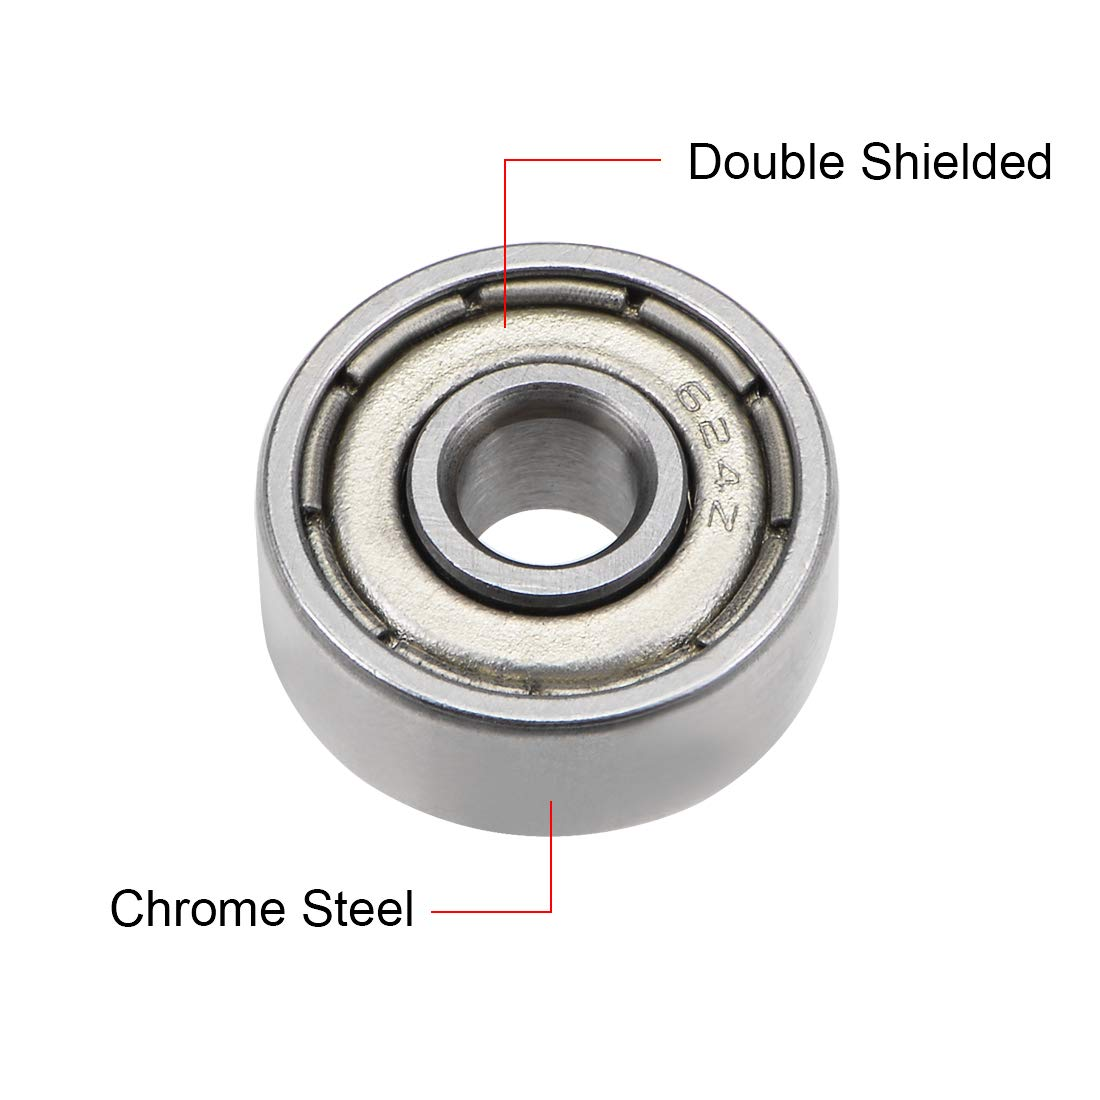 623ZZ Ball Bearing 3x10x4mm Double Shielded ABEC-3 Bearings 5pcs